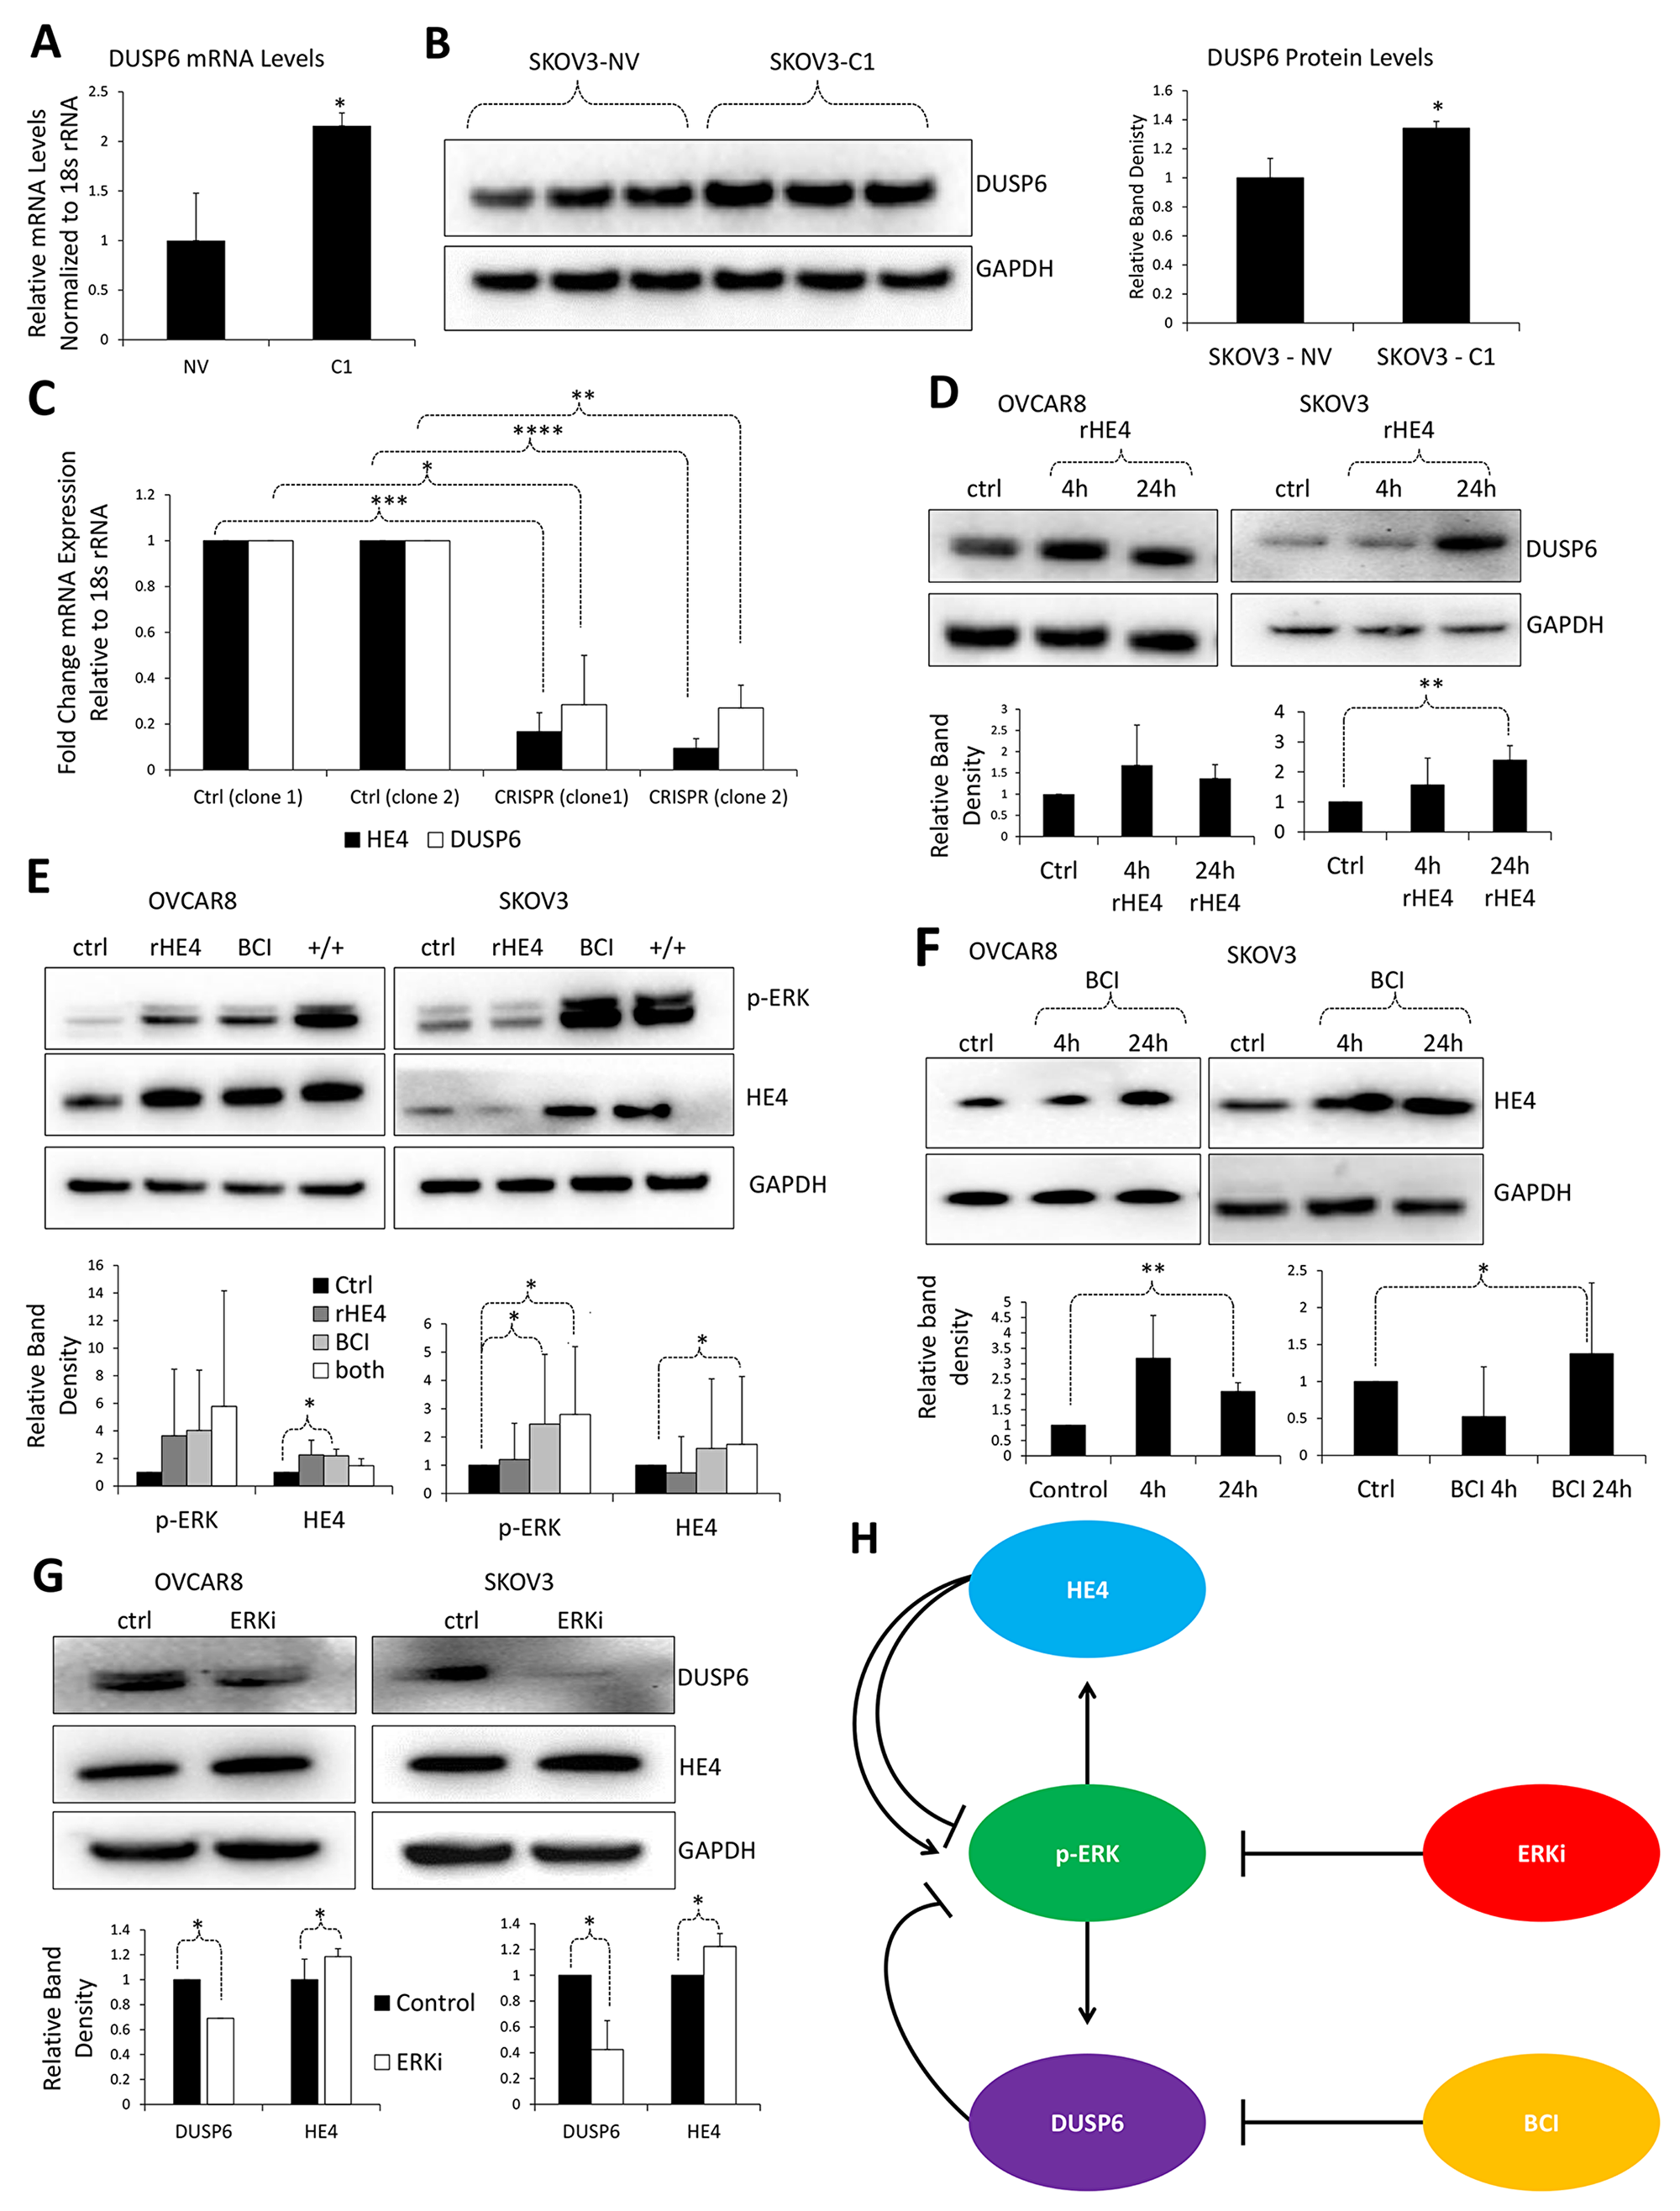 HE4 regulates DUSP6 levels in ovarian cancer cells